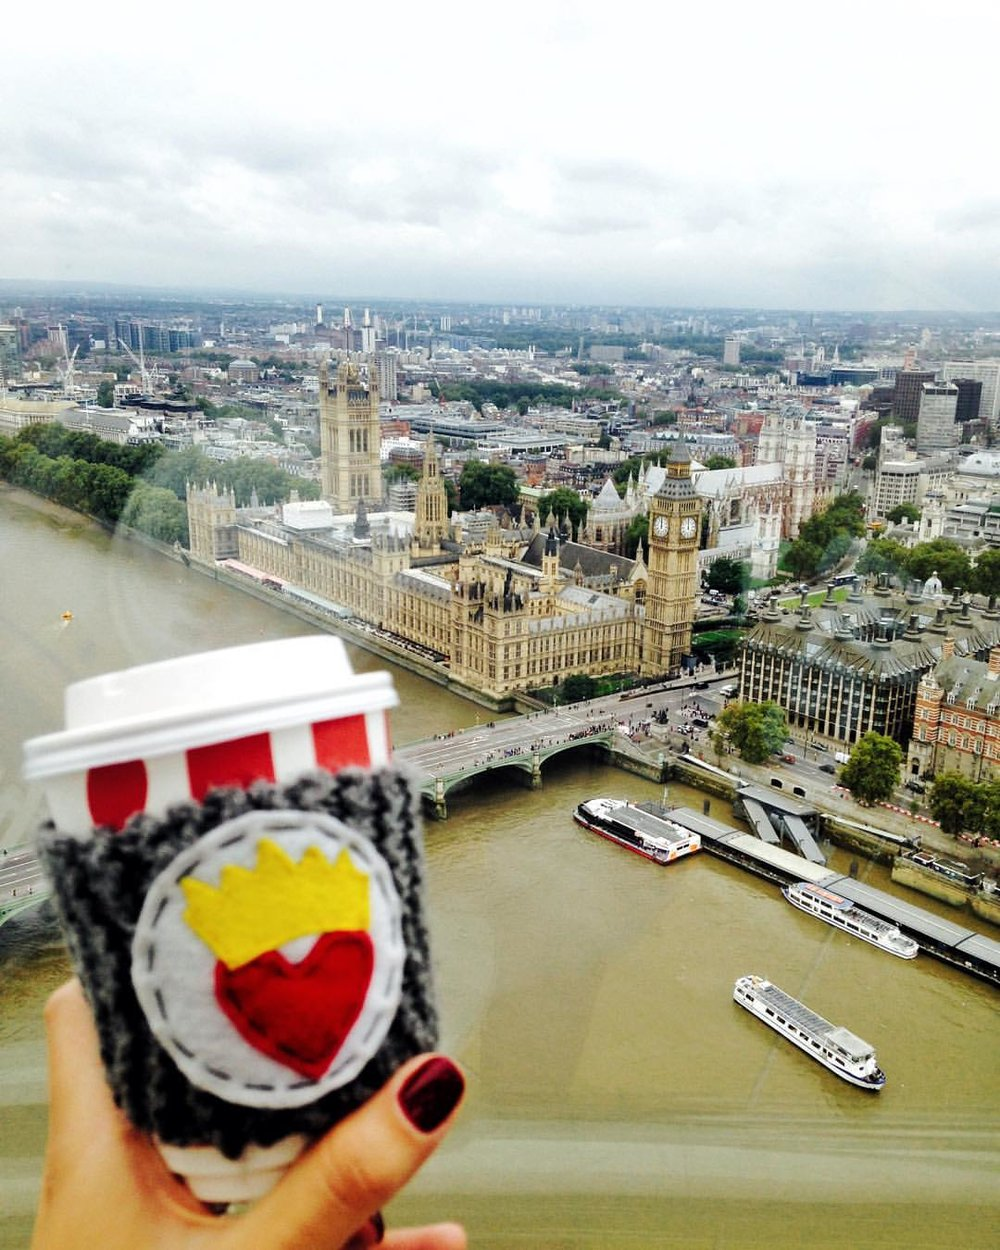 My friends and I are all going to be in different countries over the next few weeks.  But we're all connected by heart(of queens).        This is @mary2687 with her @queensbabies #heartofqueens coffee cozy overlooking Big Ben in #London.  ❤️👑      #lovemyfriends #queensbythequeen #bigben  #HOQtravels  (at The Official London Eye)